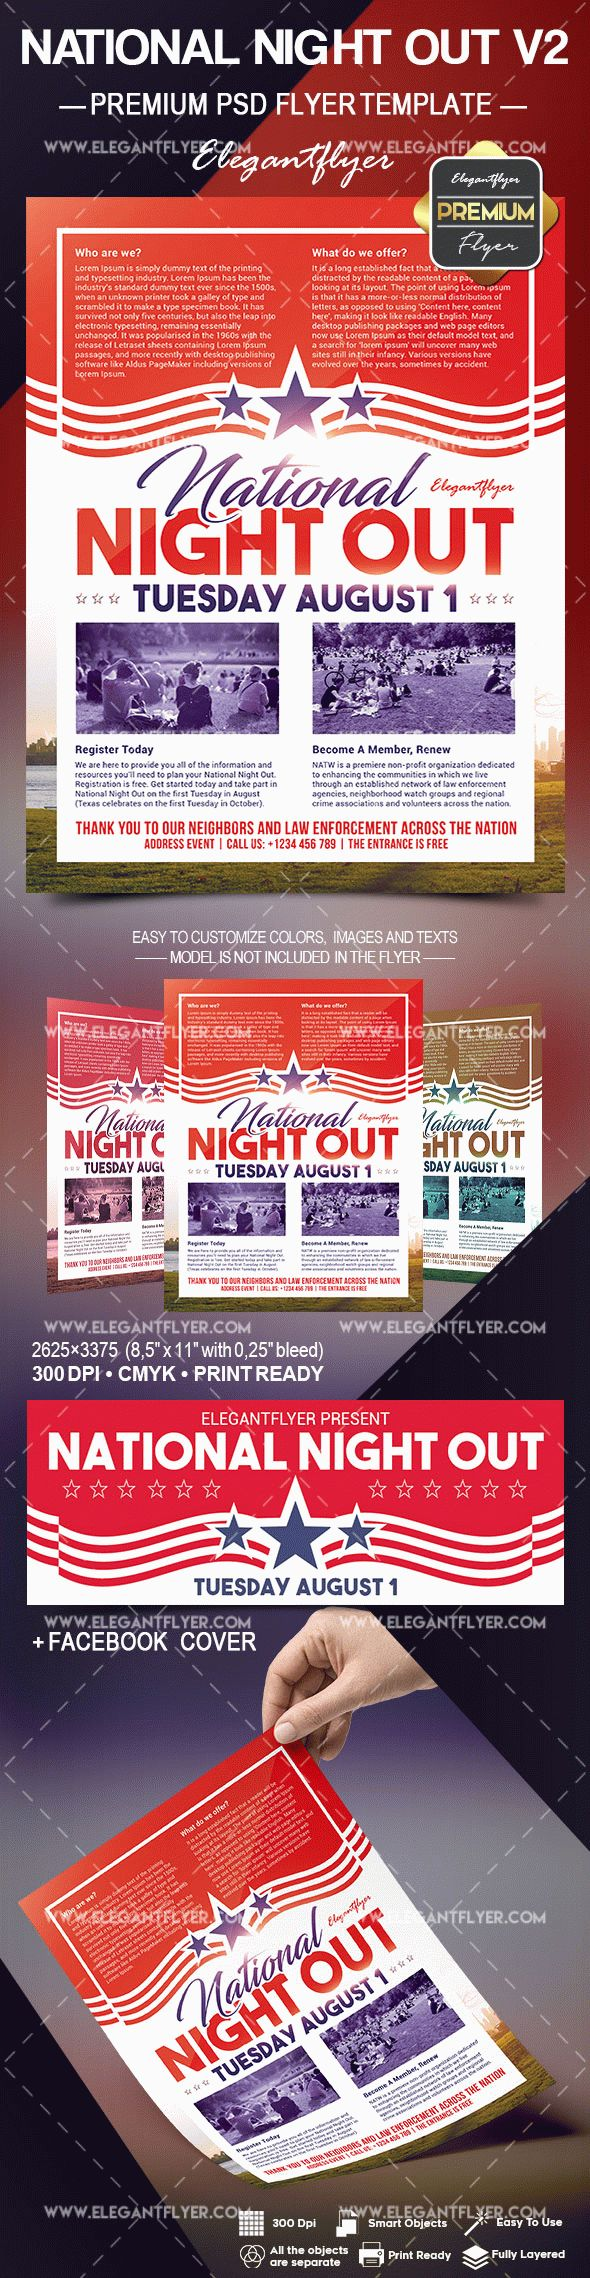 National Night Out V2 Flyer Psd Template By Elegantflyer